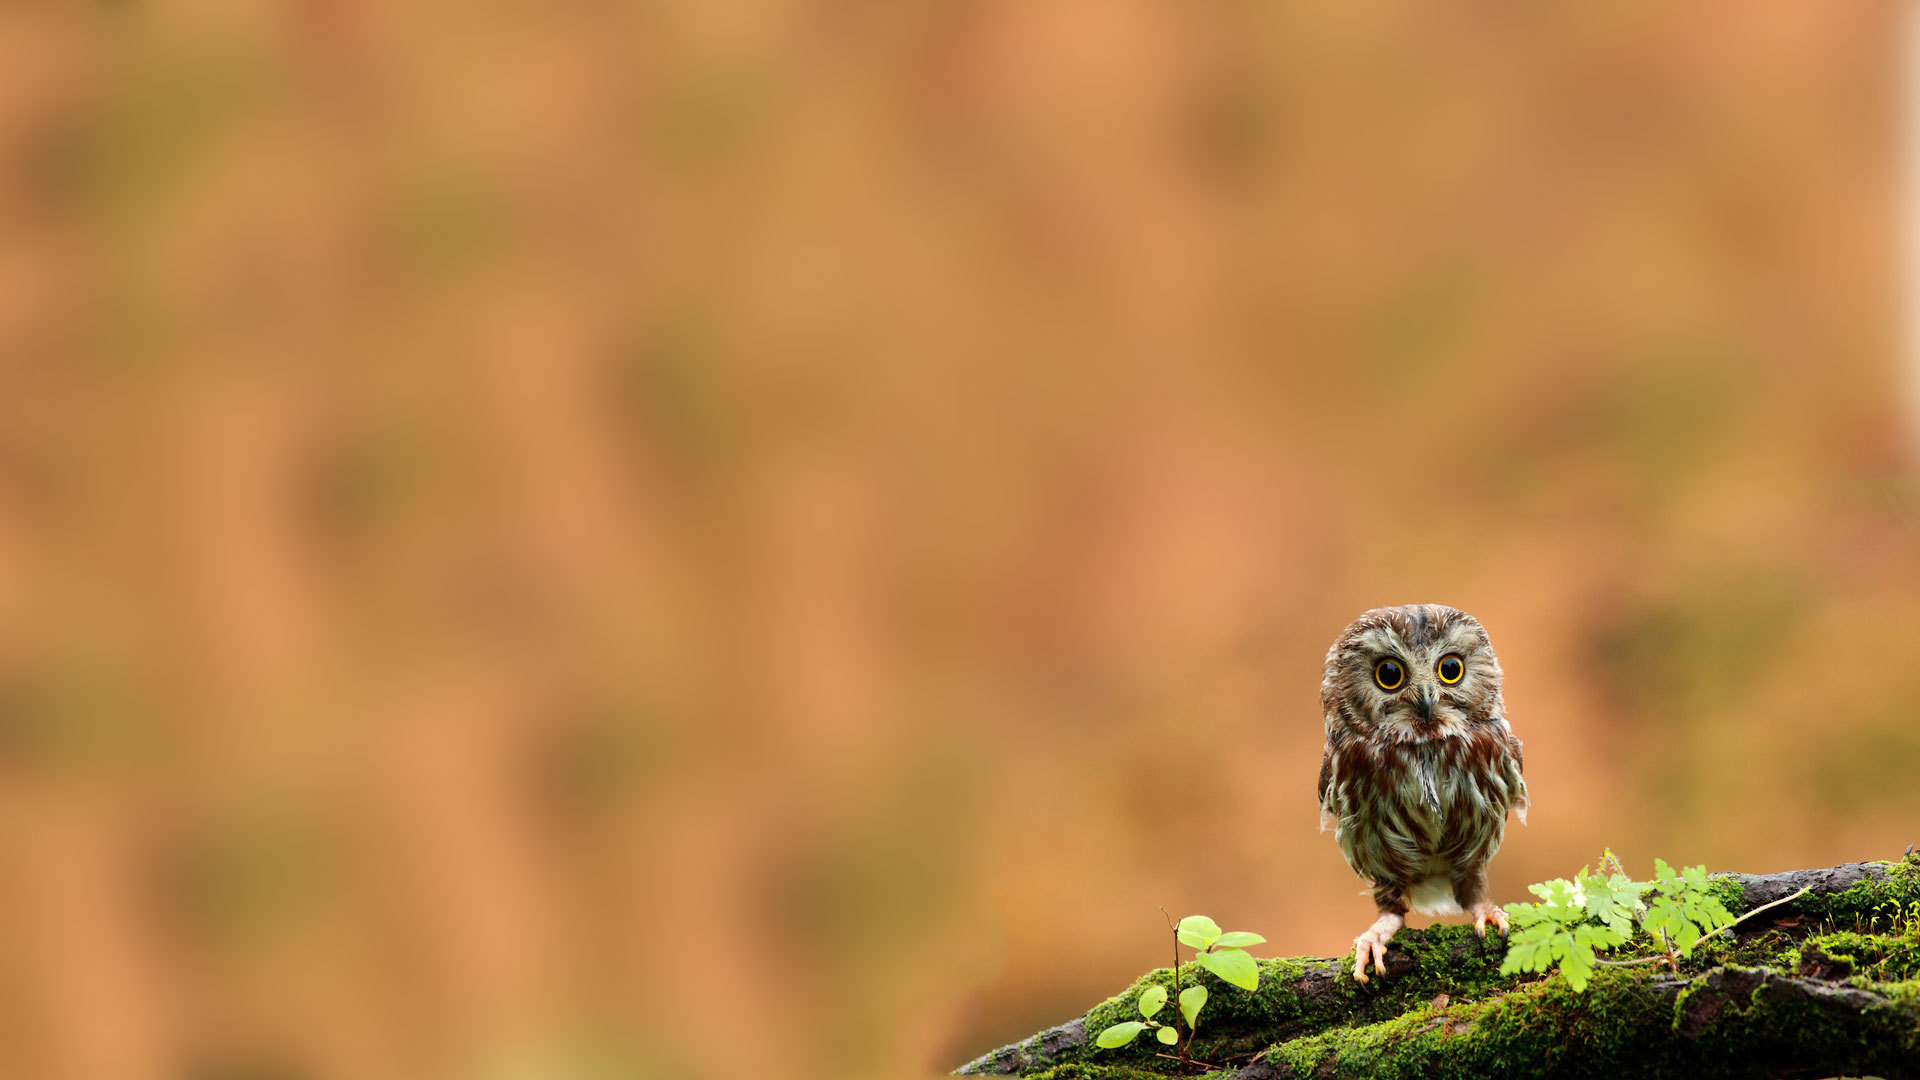 21365 download wallpaper Animals, Birds, Owl screensavers and pictures for free